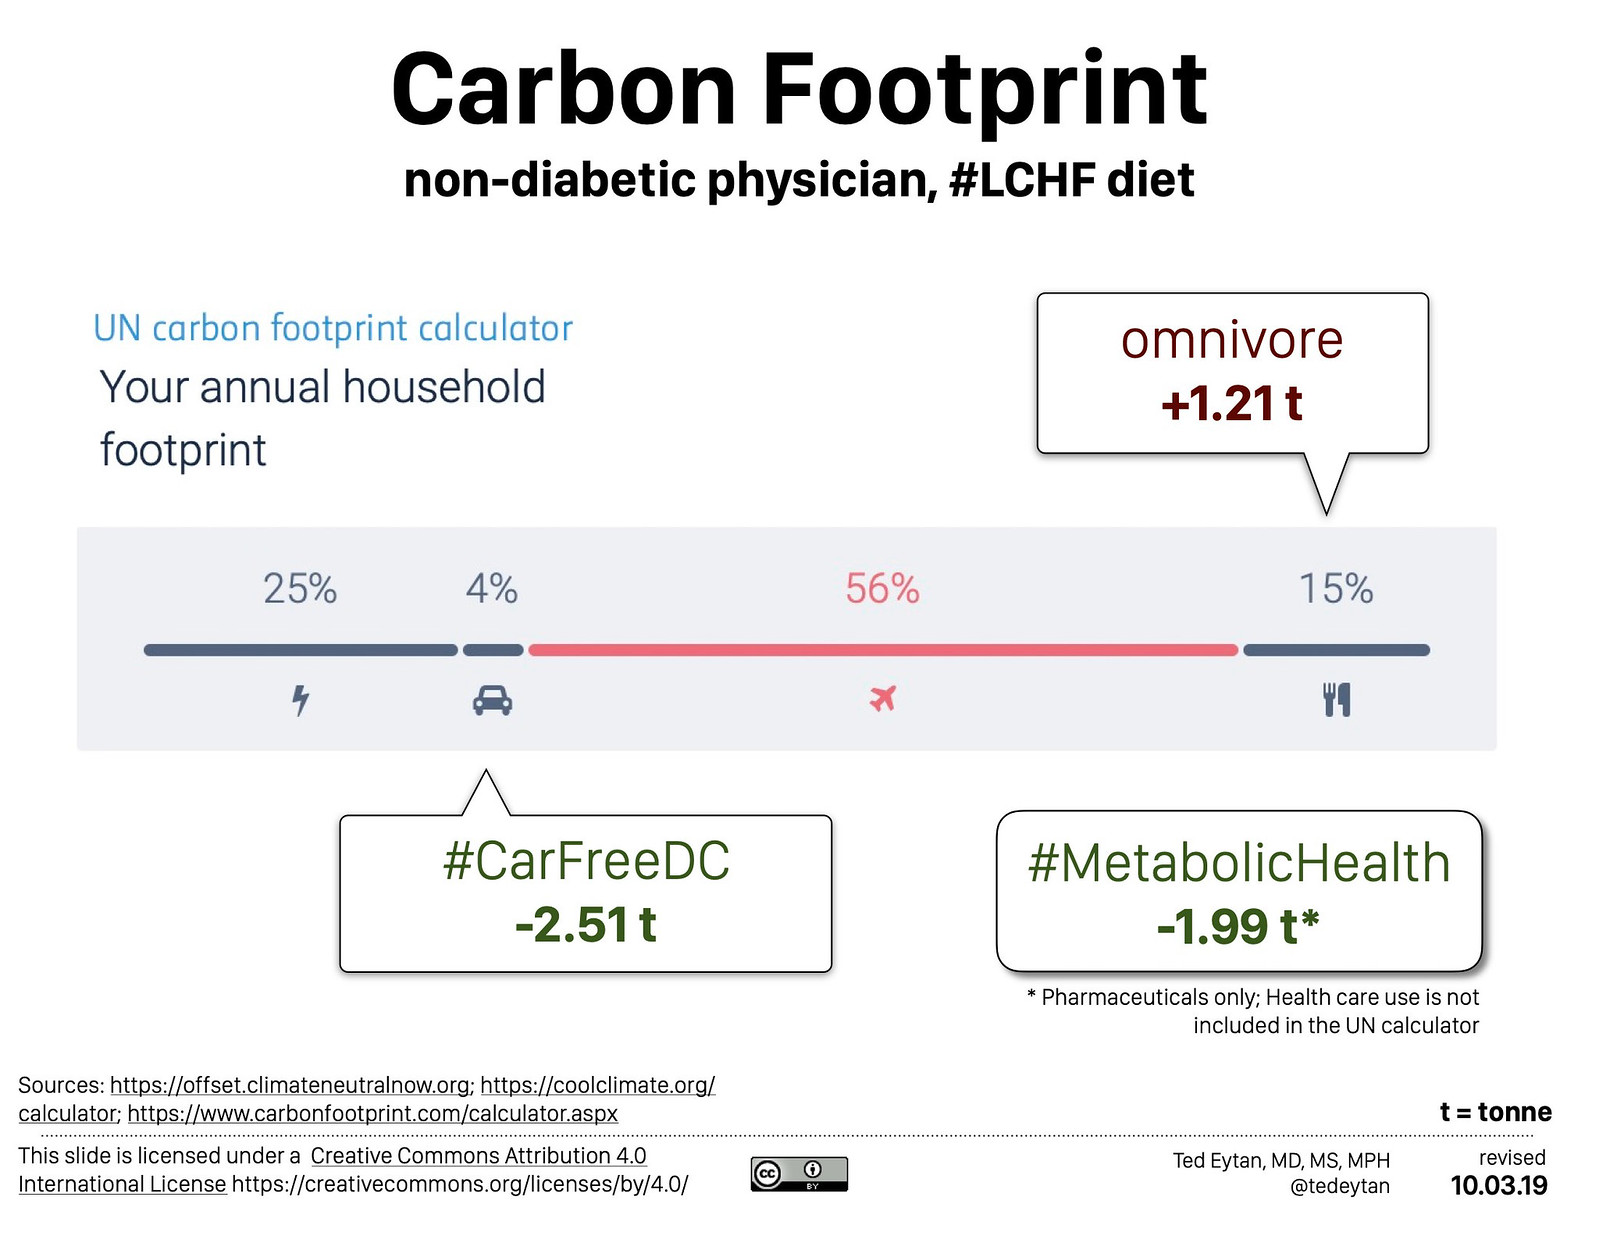 Calculating carbon footprint as a non-diabetic physician on an LCHF diet